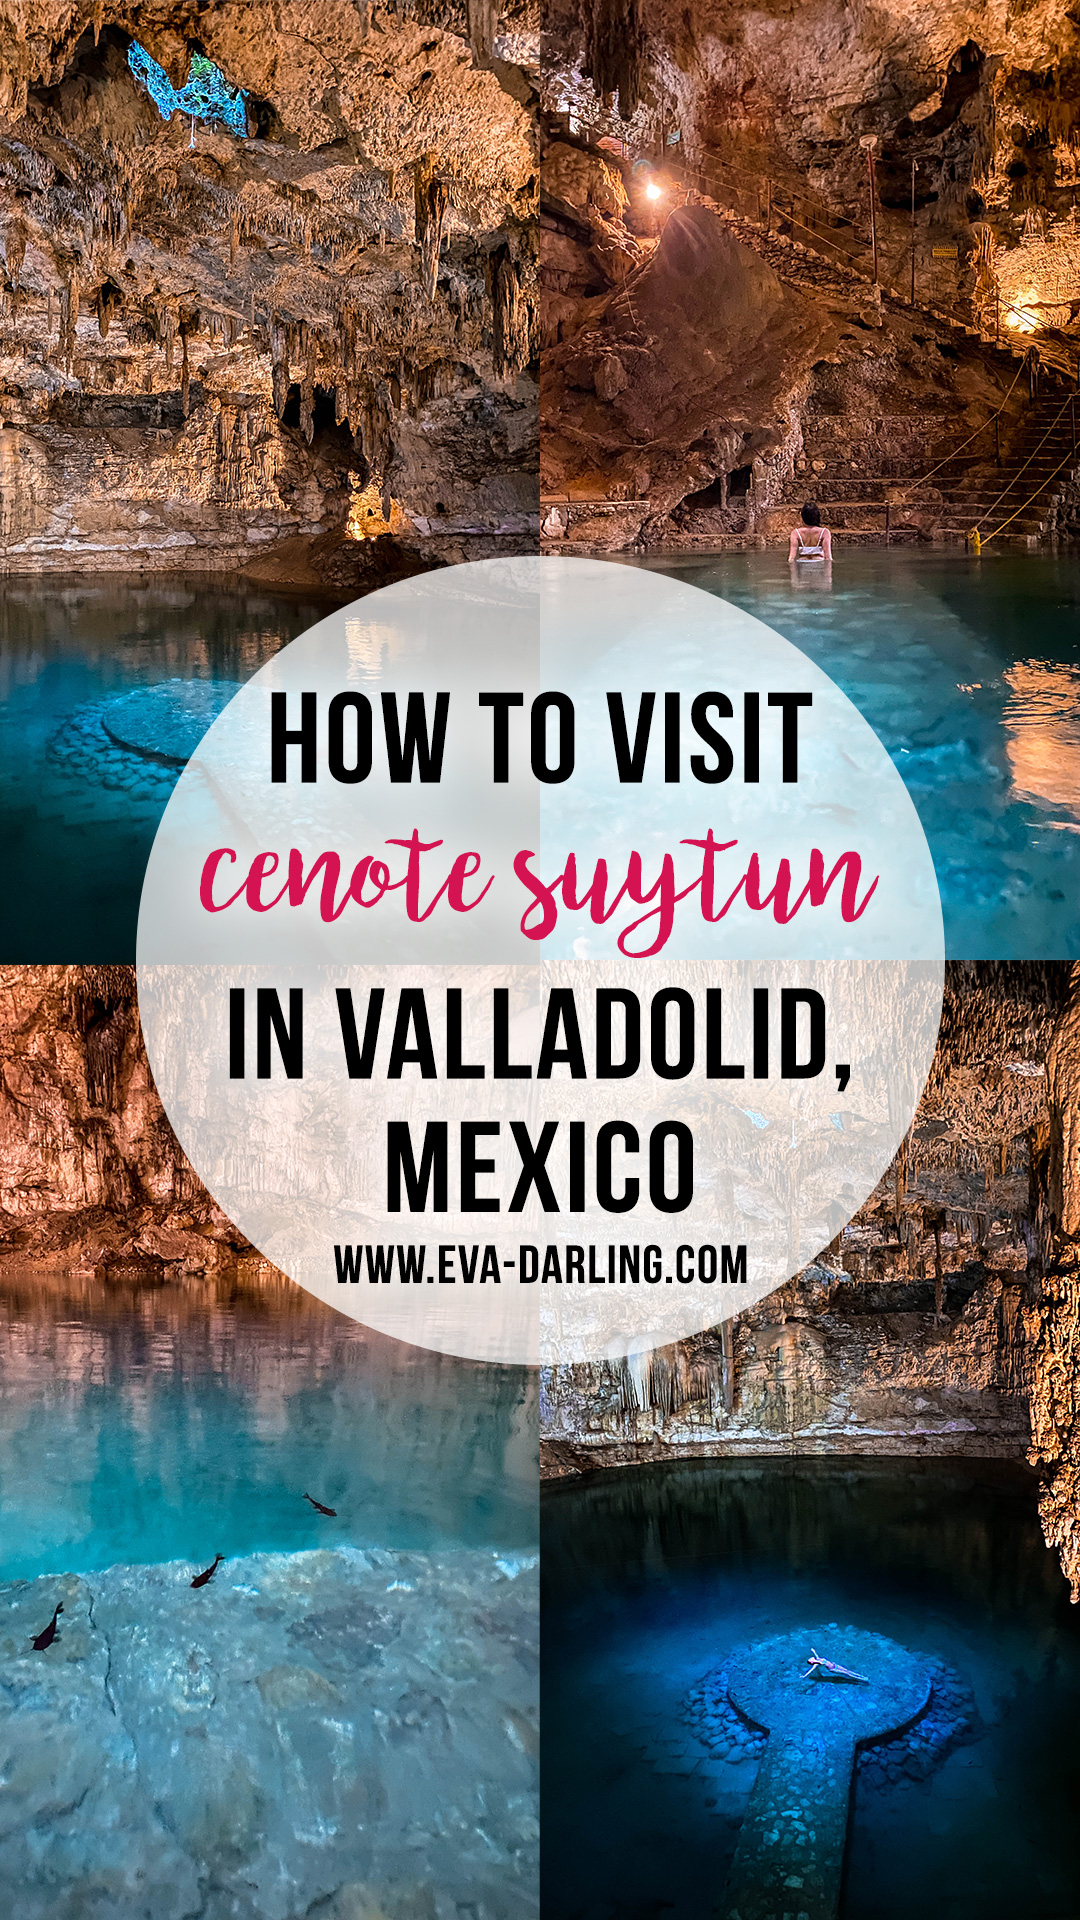 how to visit cenote suytun valladolid underground freshwater swimming cave unique experience yucatan peninsula inexpensive things to do in mexico tulum day trip where to go quintana roo best unique photo location instagrammable